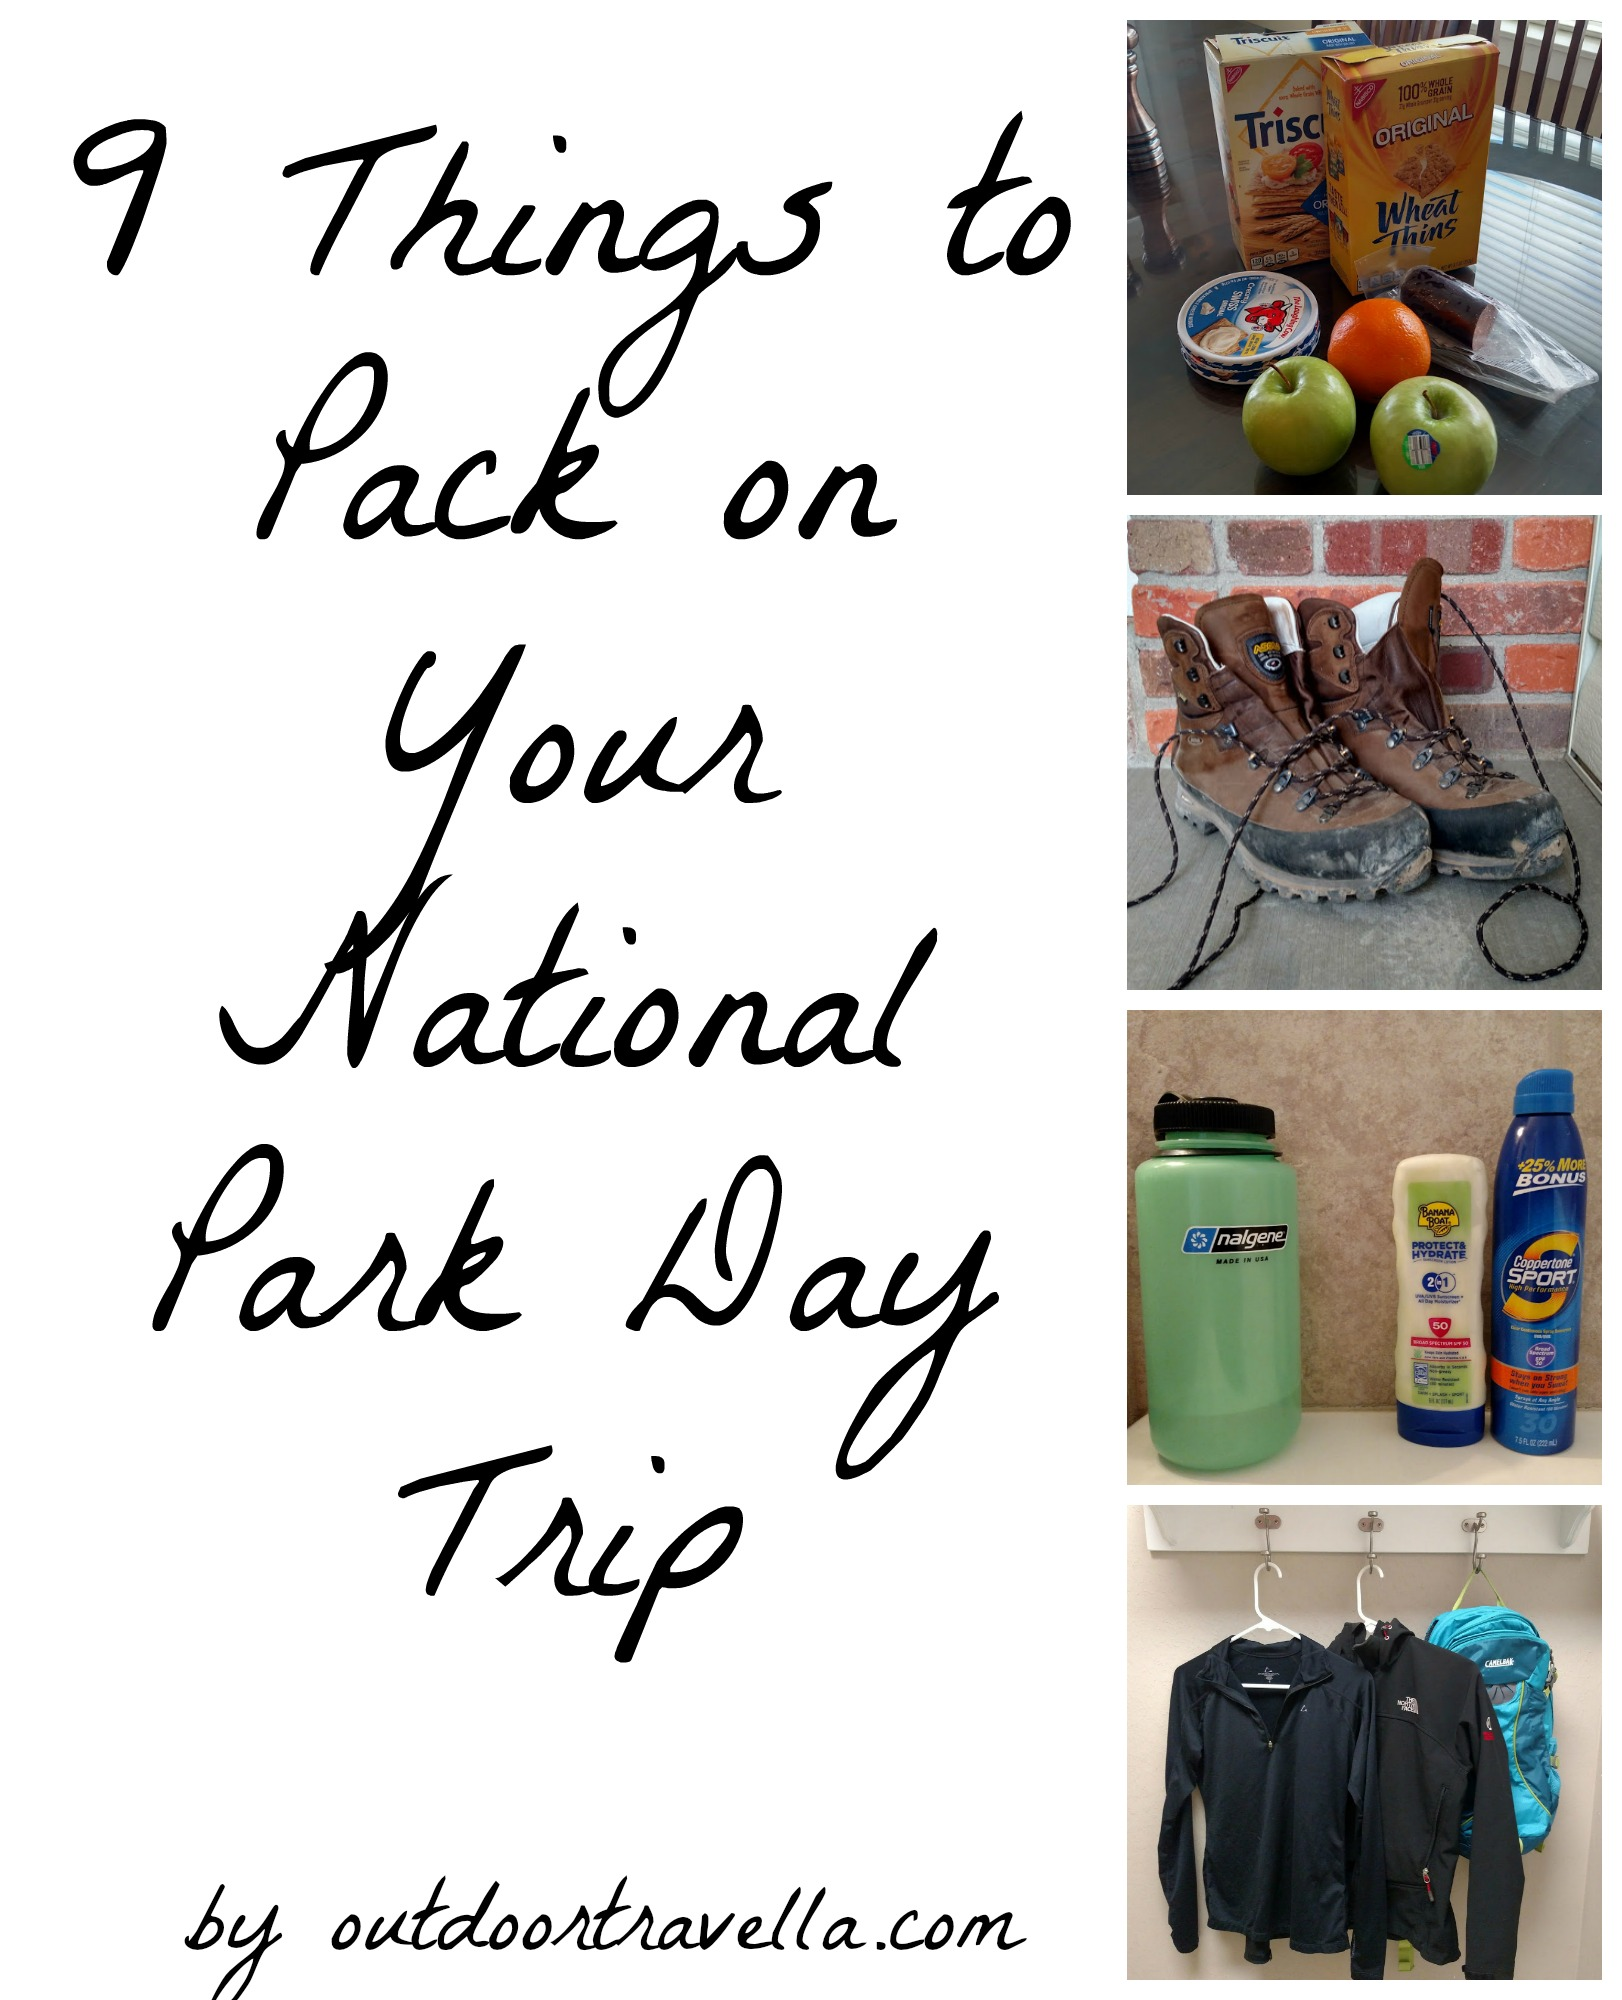 9 Things to Pack on Your National Park Day Trip